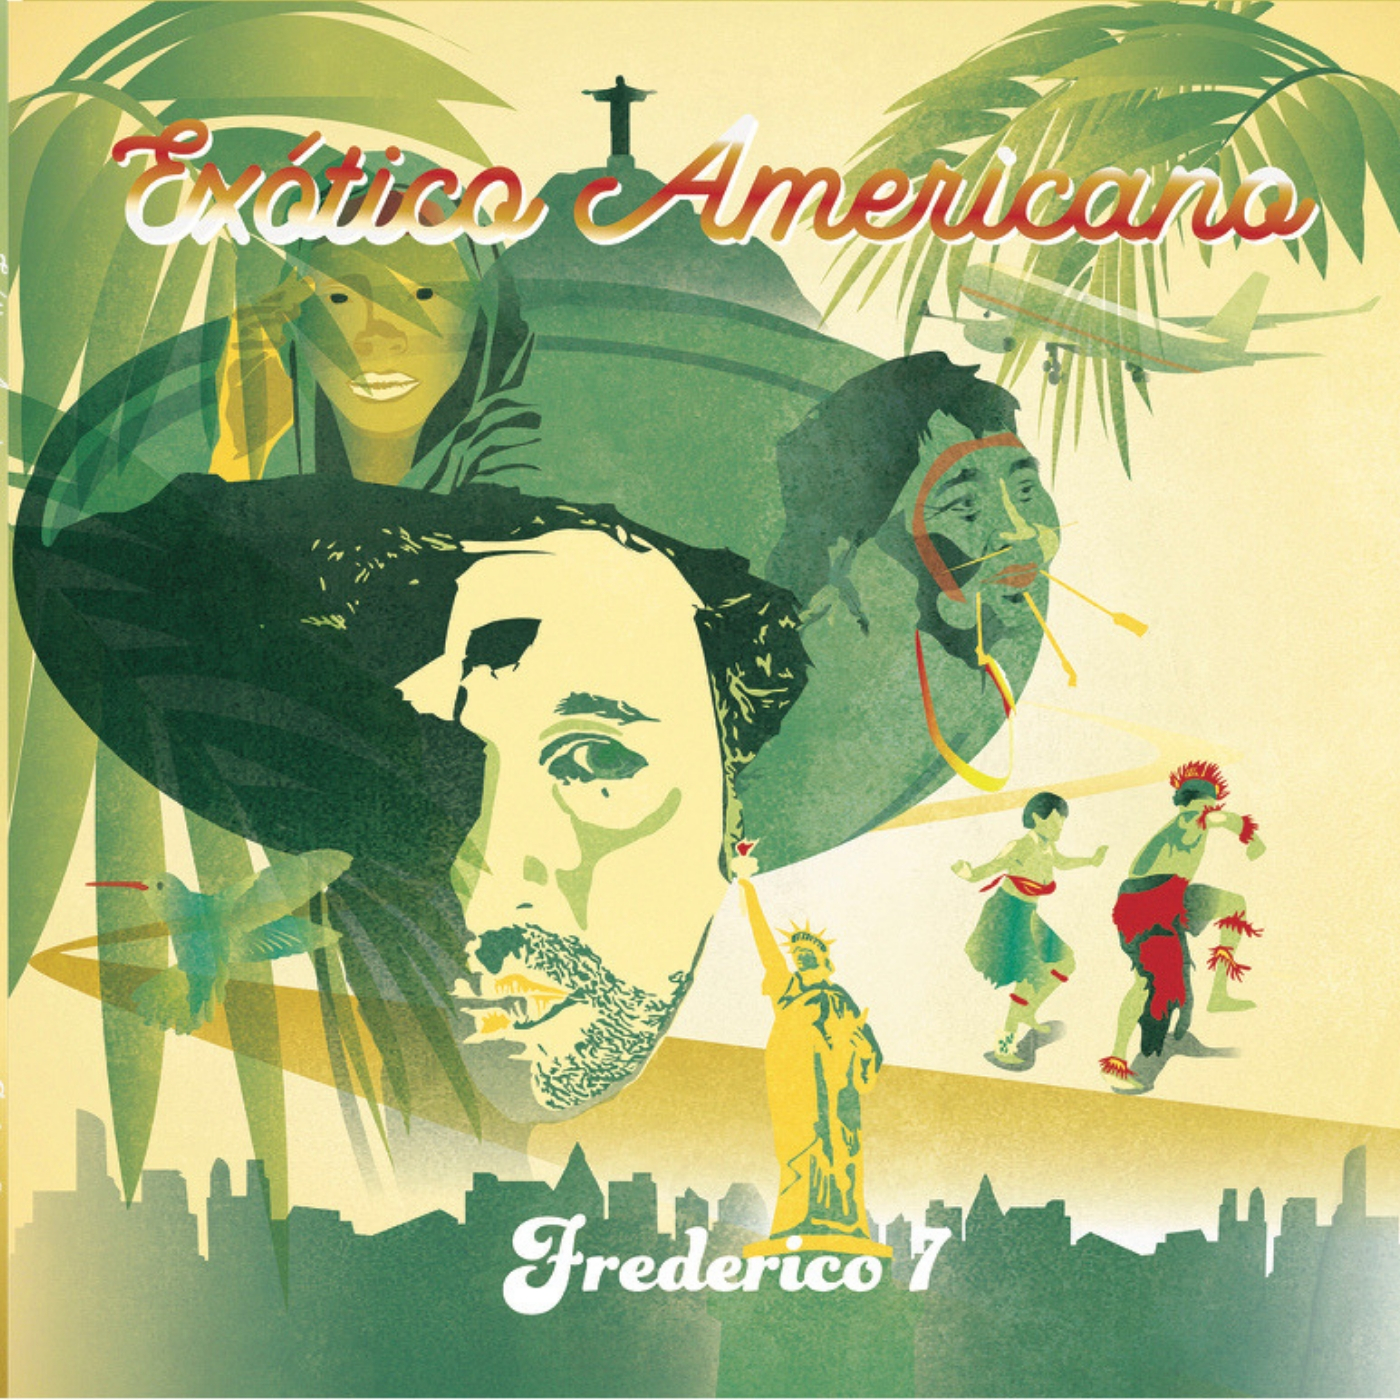 Exótico Americano - The album is an amalgamation of Frederico's experiences throughout the great American continent. Exótico Americano fuses Afro-Brazilian rhythms with American Funk, Soul, Dub and a dash of Psychedelia.